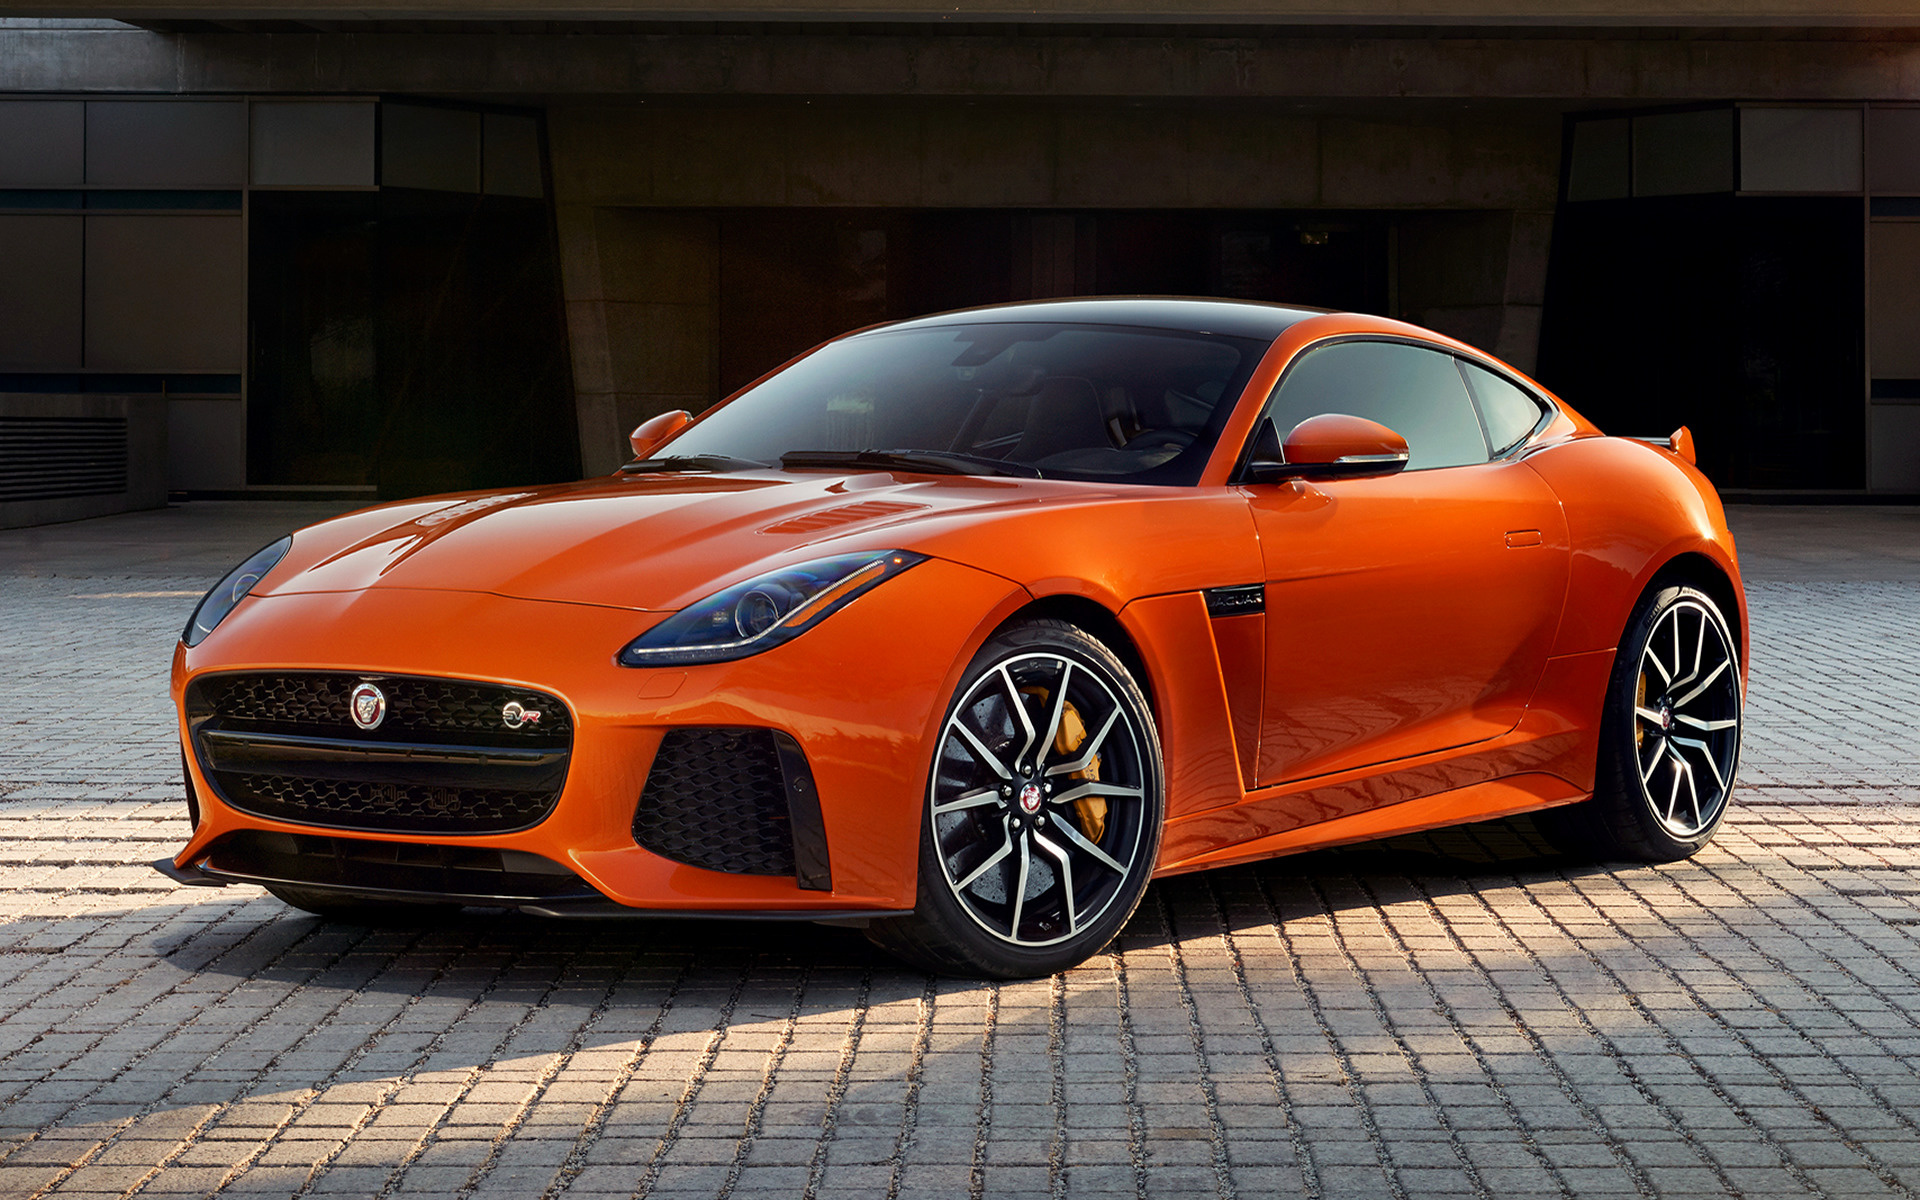 F Type Coupe >> 2016 Jaguar F-Type SVR Coupe (US) - Wallpapers and HD Images | Car Pixel